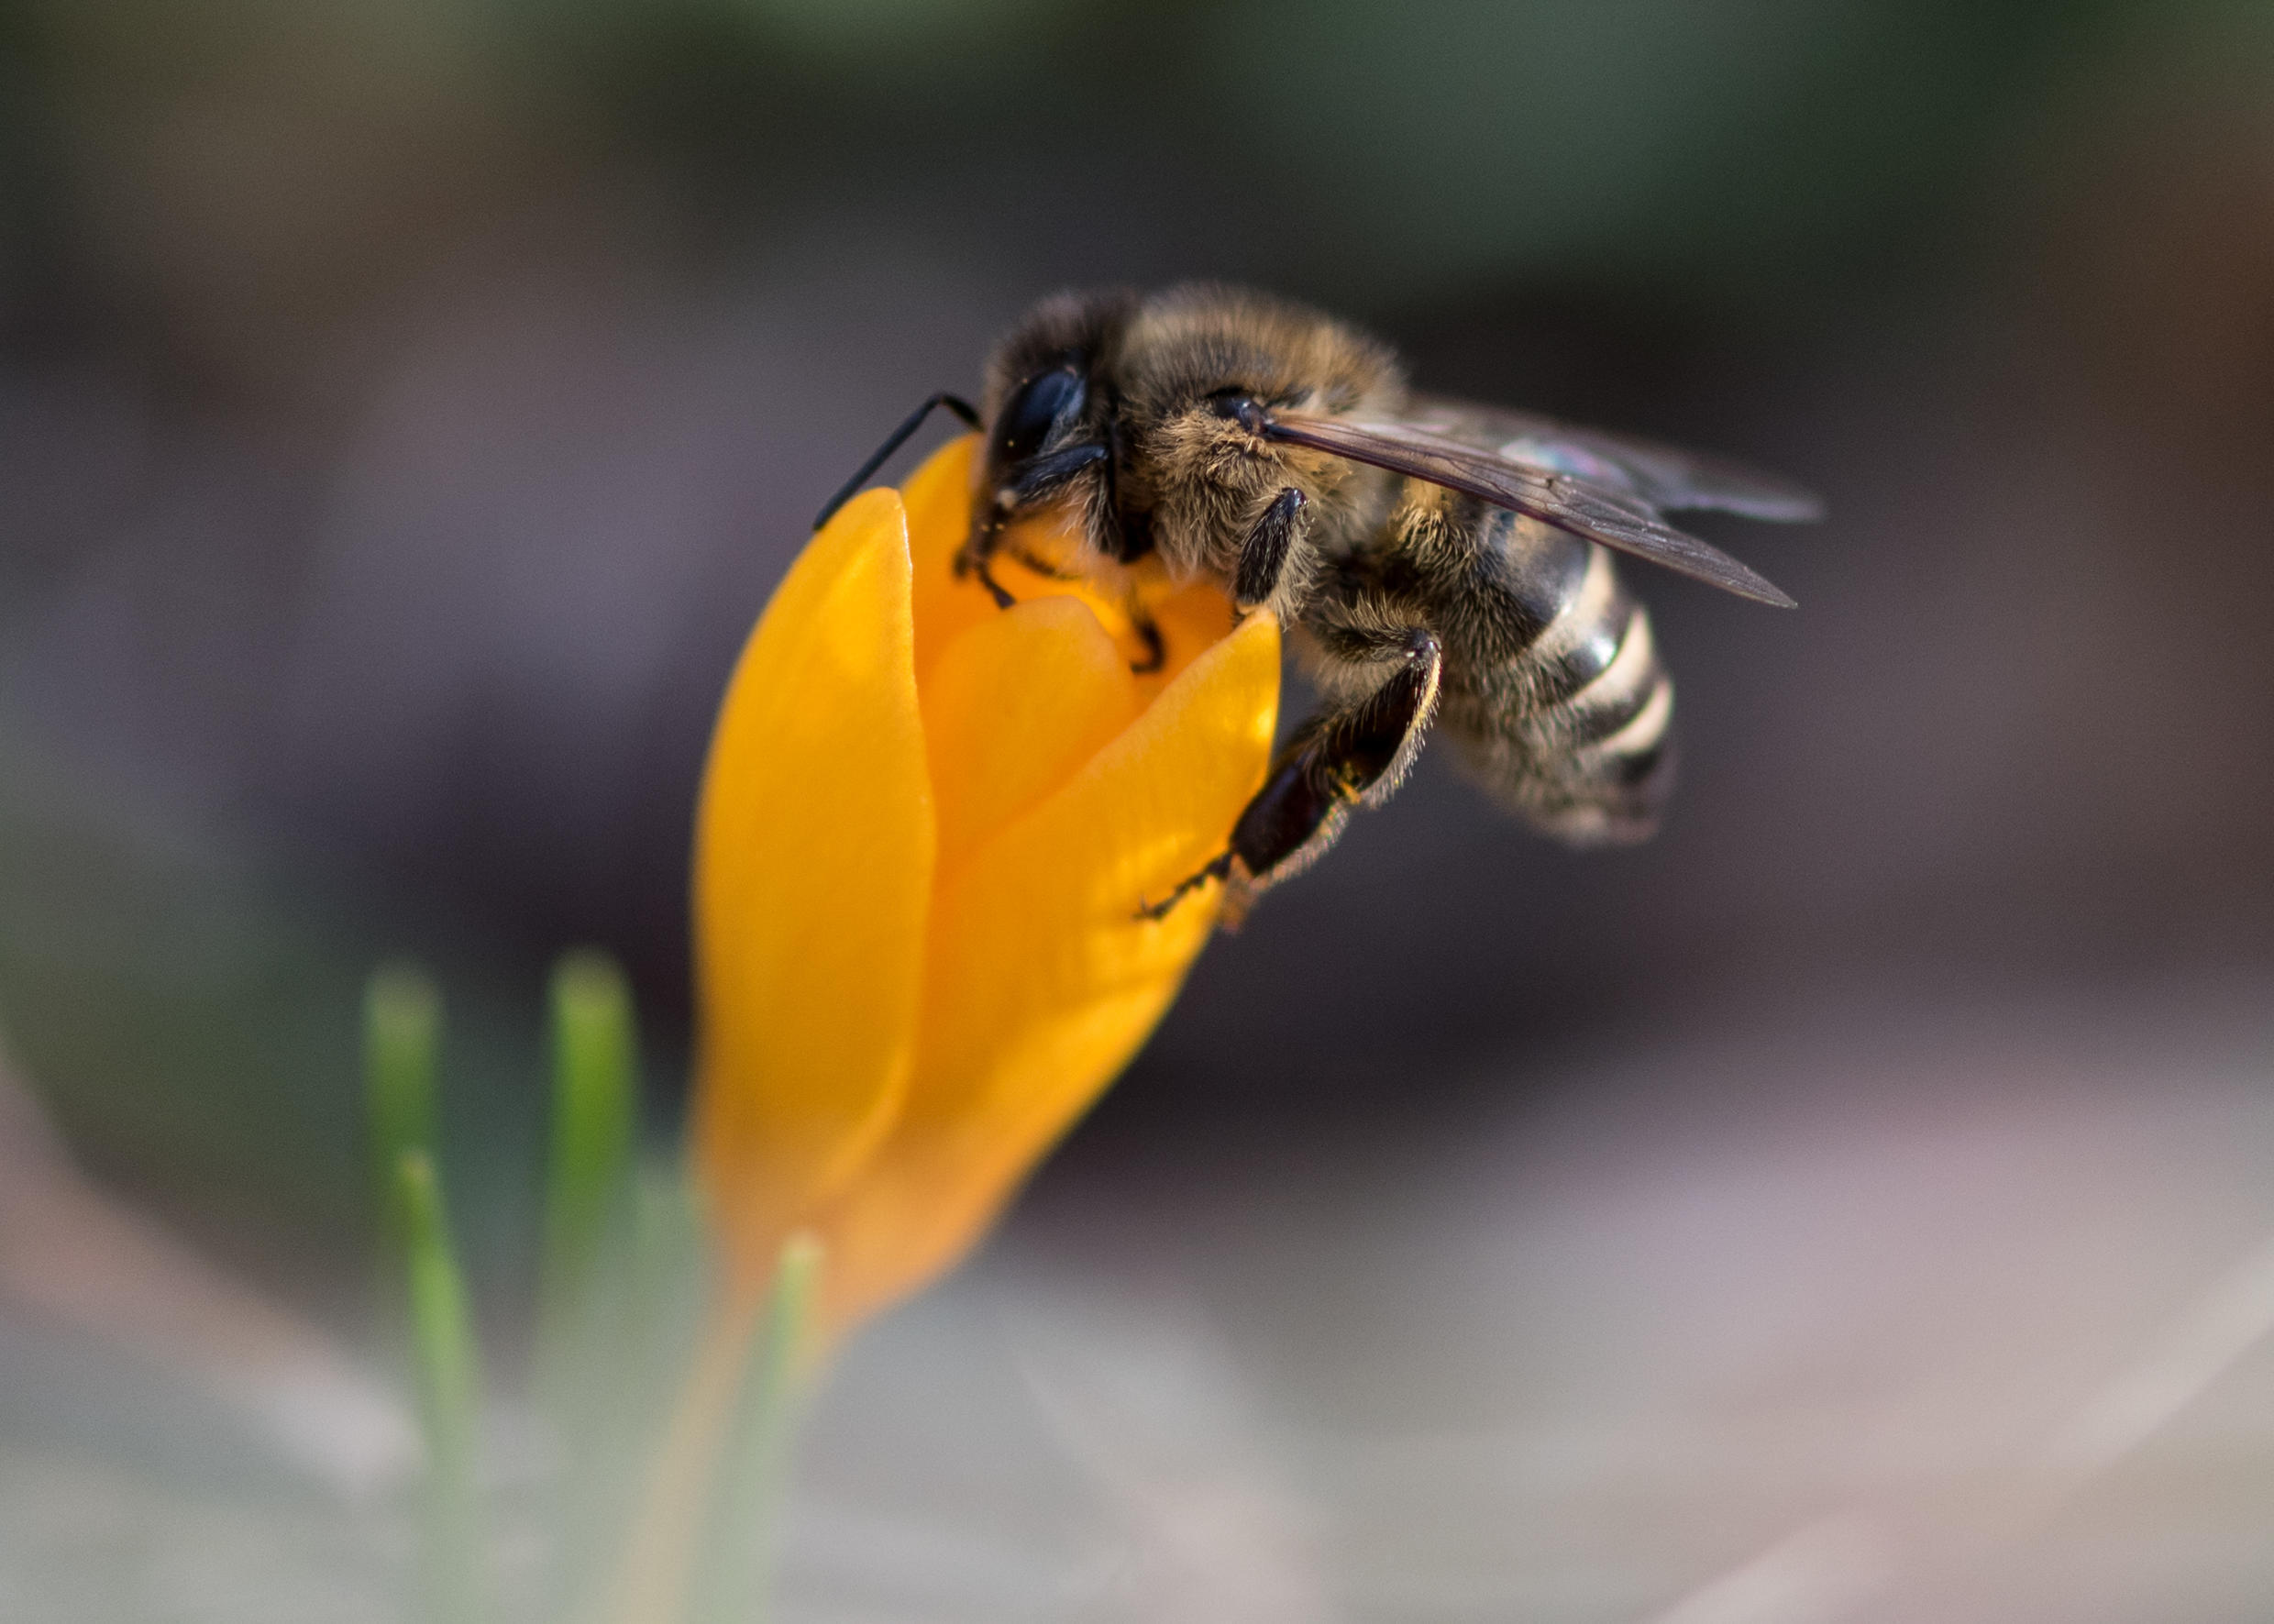 The venom of honeybees may prove a game-changer in the fight against breast cancer.